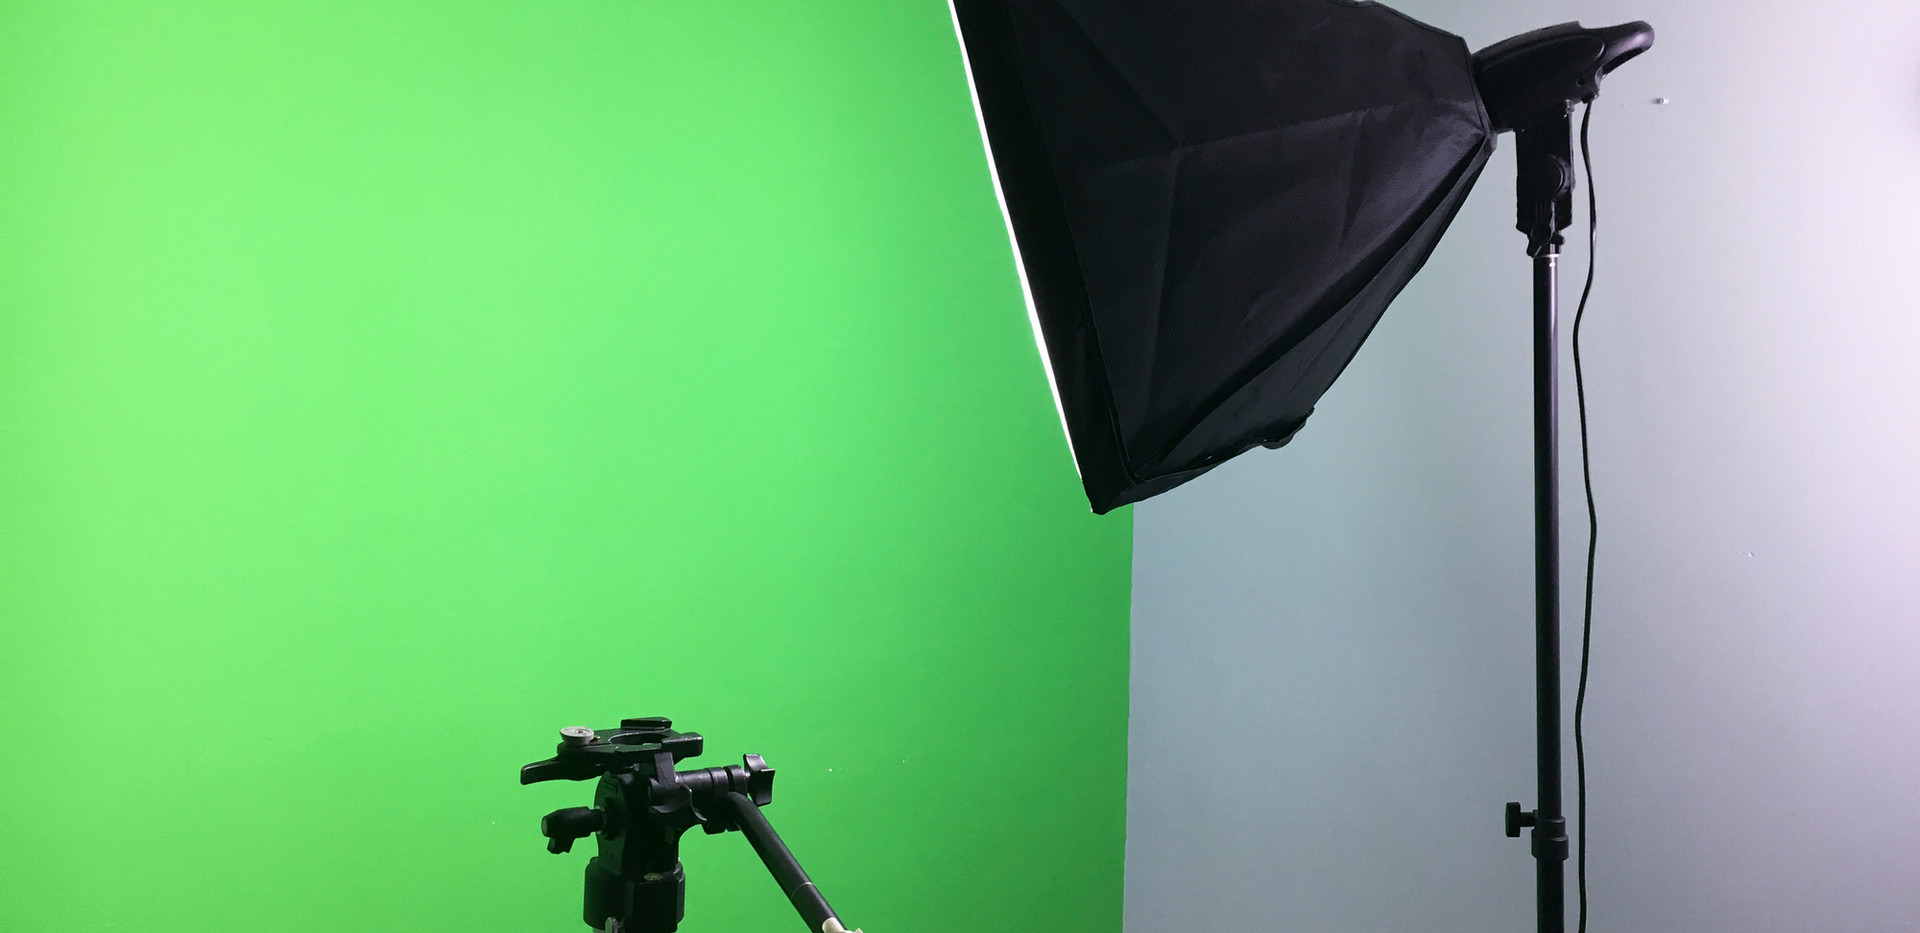 Green Screen Room05.jpg